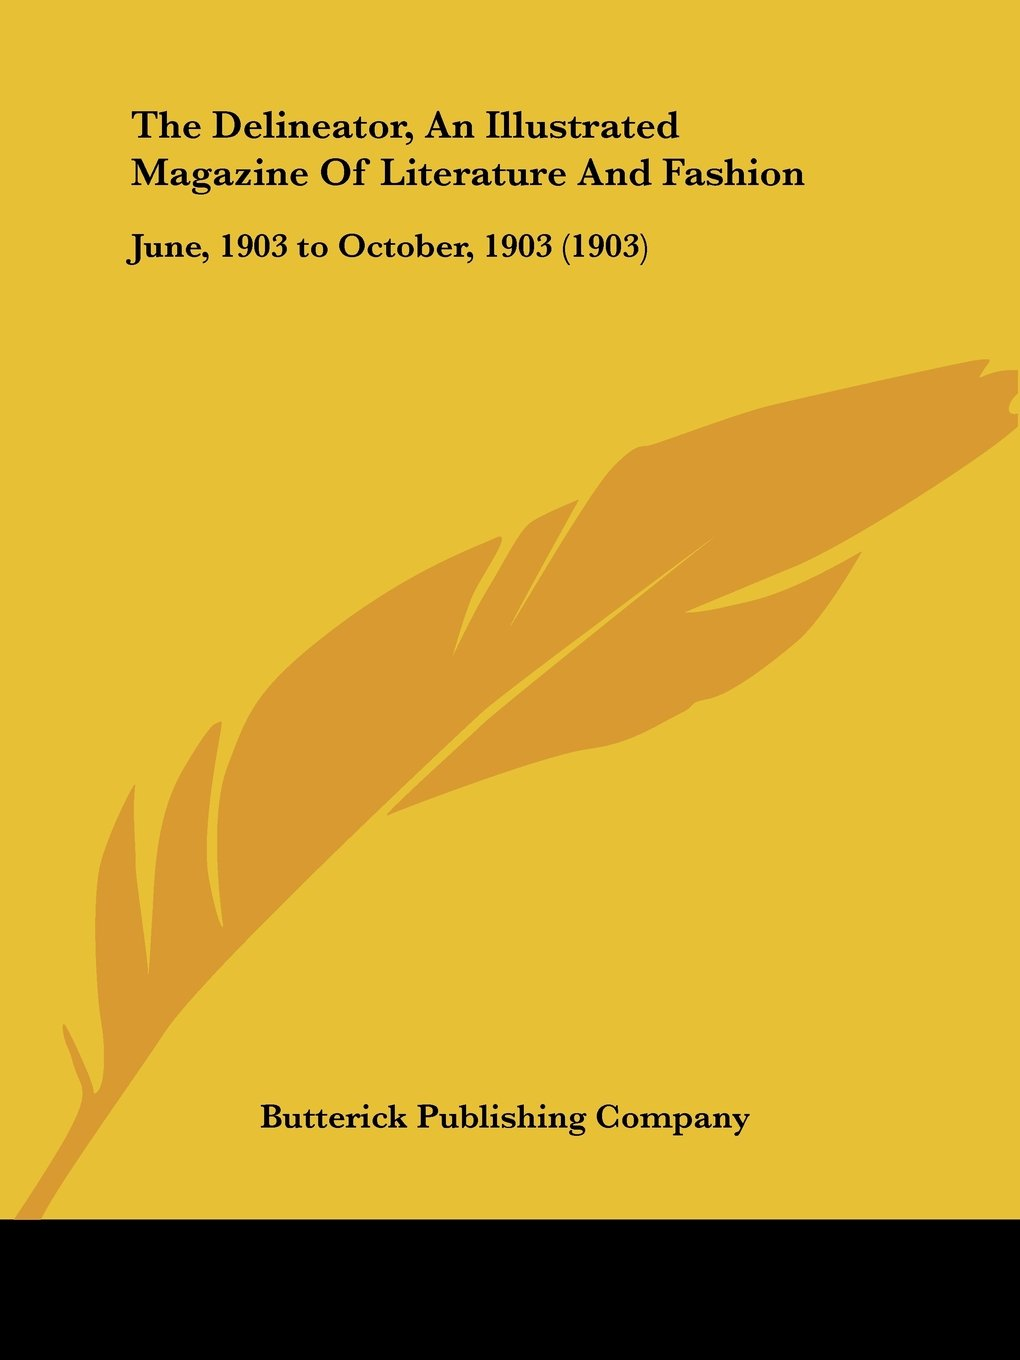 The Delineator, An Illustrated Magazine Of Literature And Fashion: June, 1903 to October, 1903 (1903) PDF